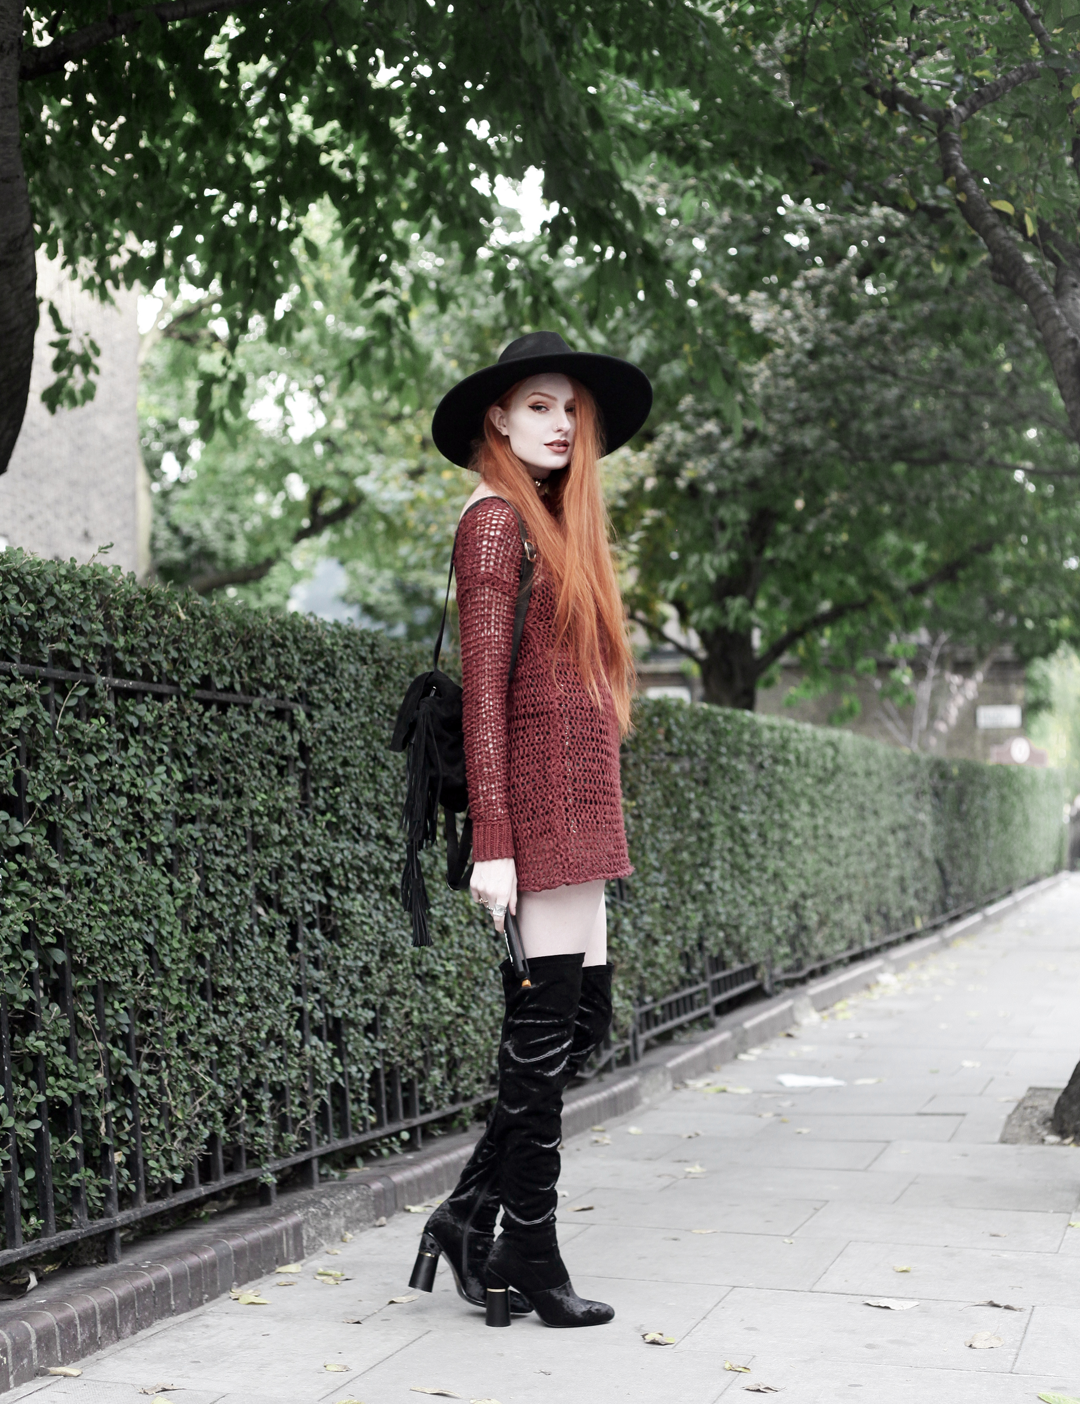 Olivia Emily wears Unif Knit Jumper, Asos Fringe Backpack, Killstar Witch Brim Hat, and Ego Velvet Over Knee Boots